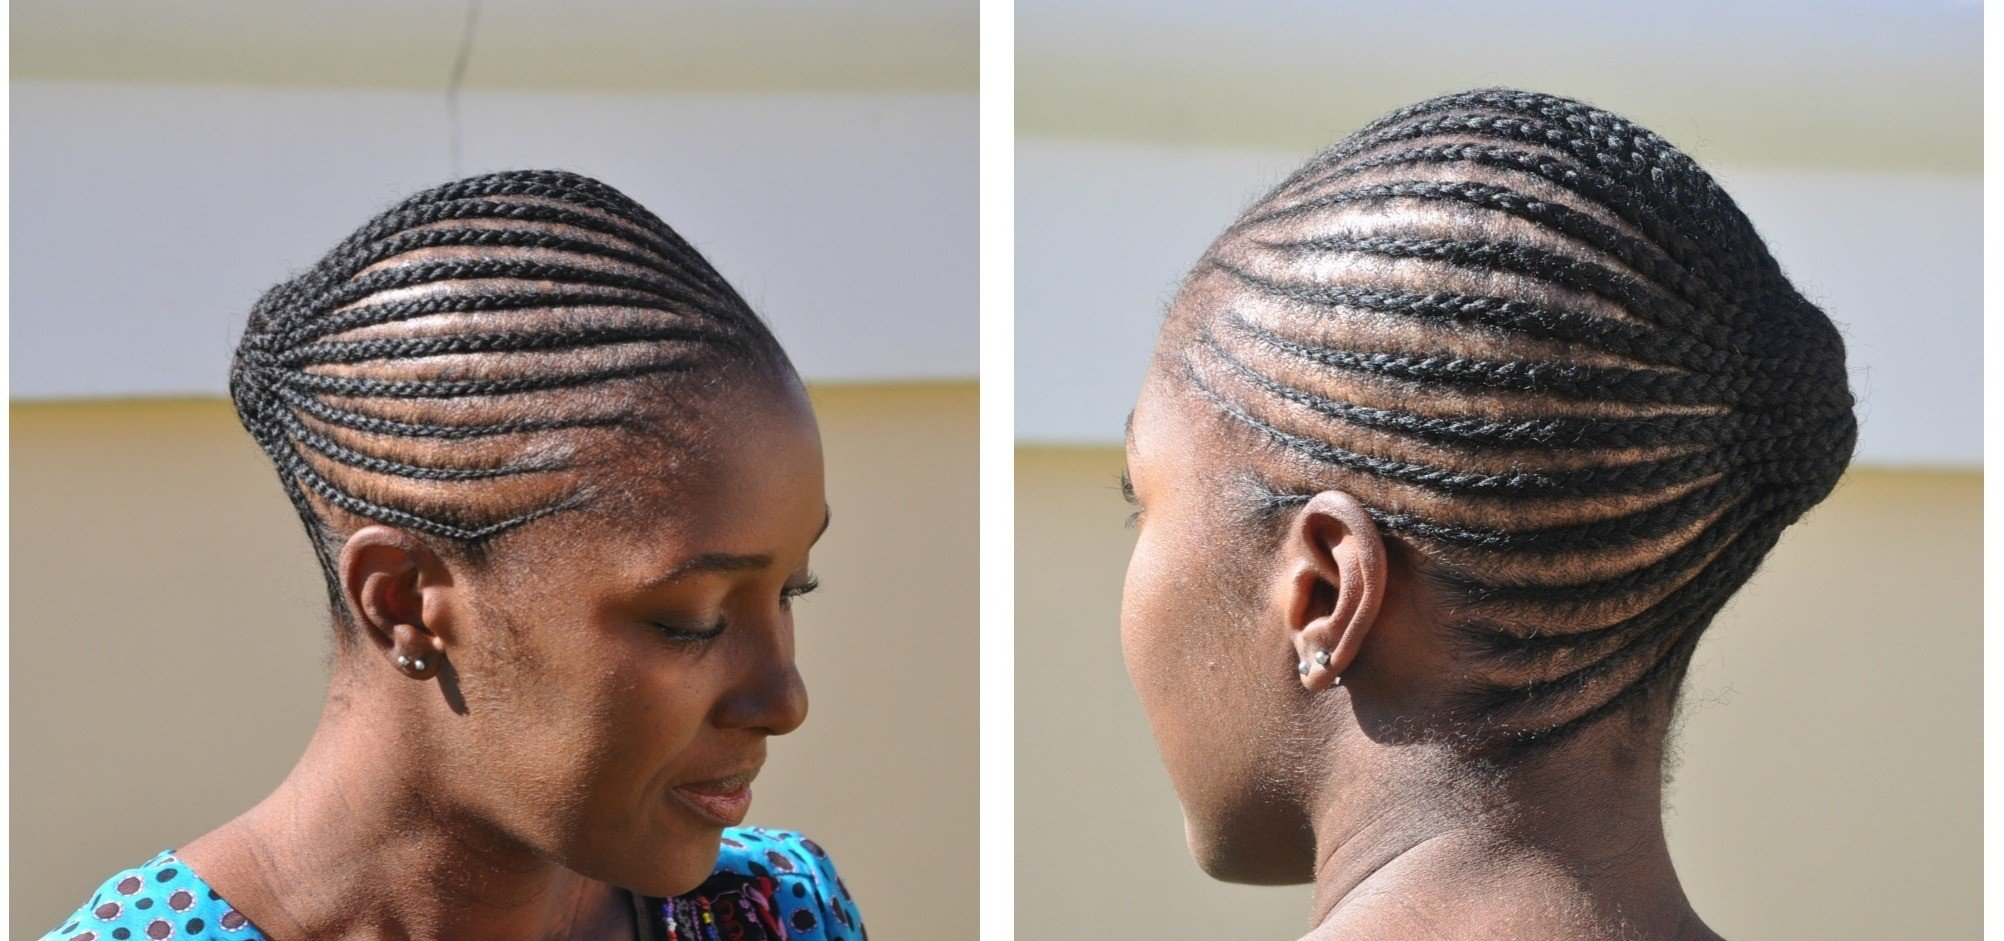 top 10 georgeous hairstyles nigerian men love to see on their women